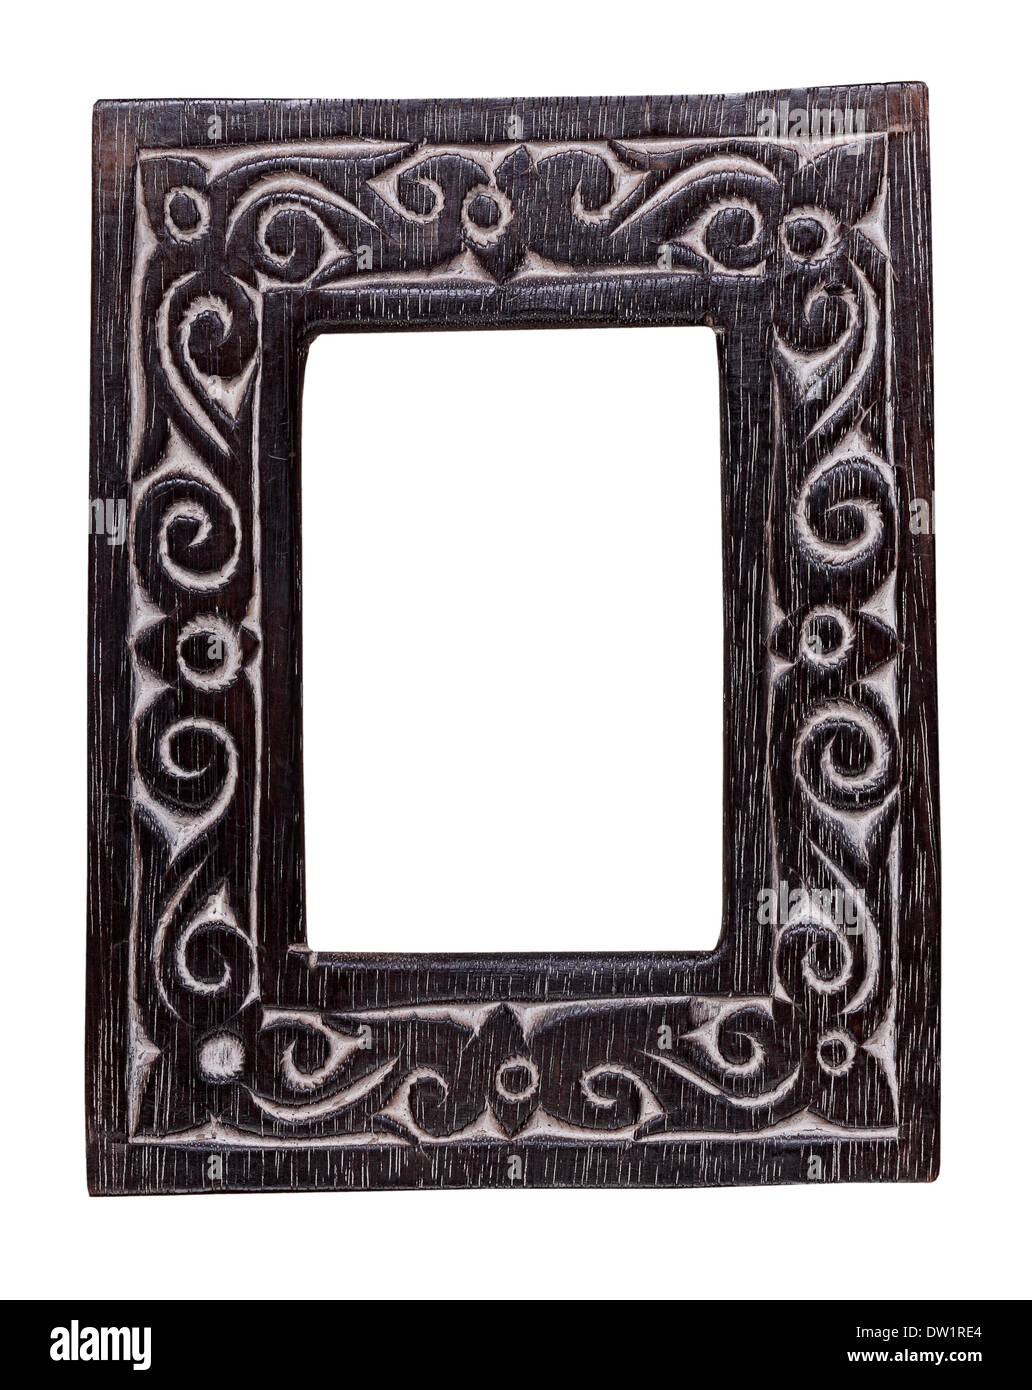 wood frame - Stock Image